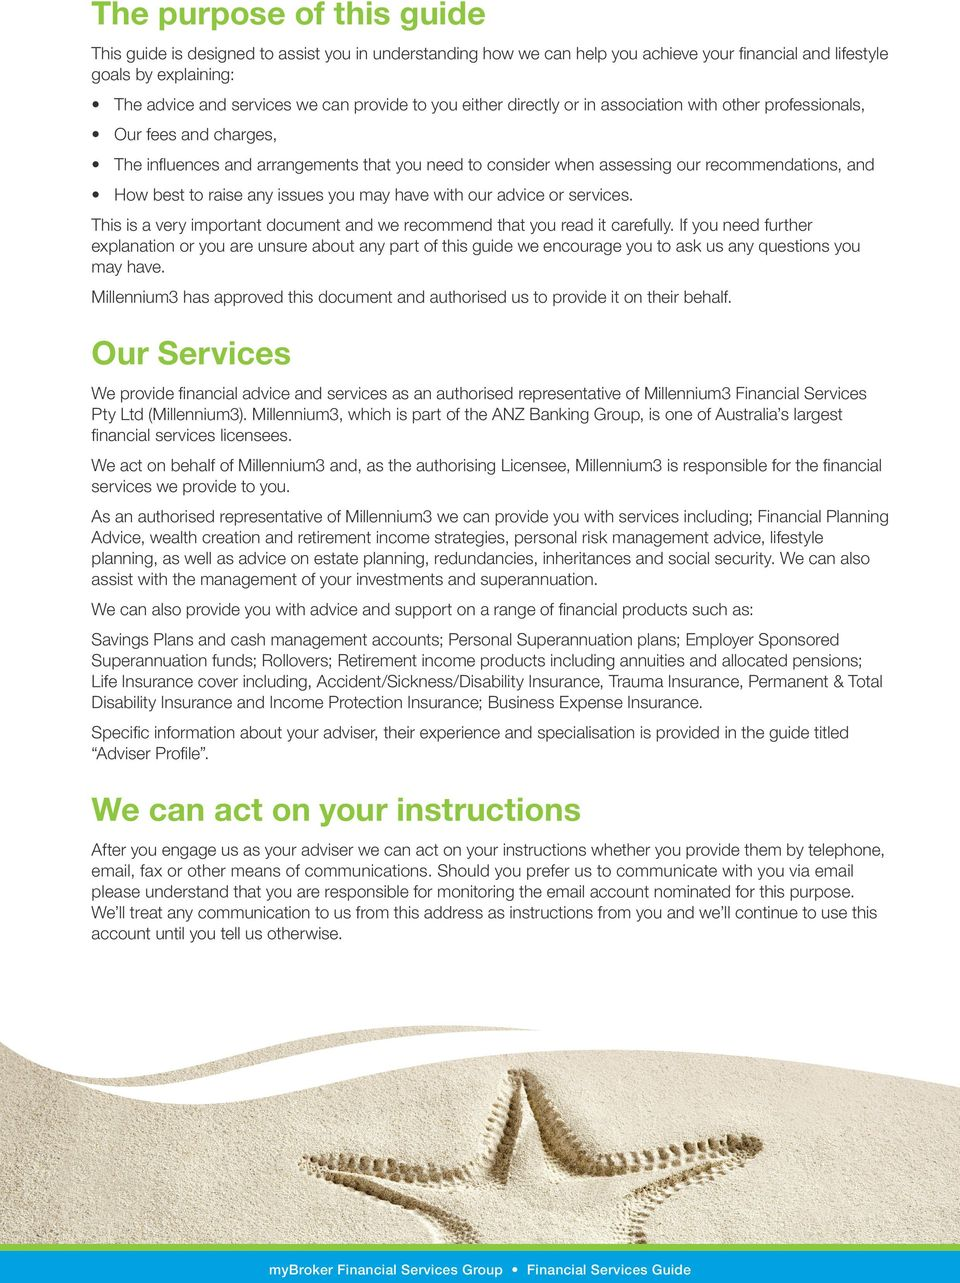 raise any issues you may have with our advice or services. This is a very important document and we recommend that you read it carefully.